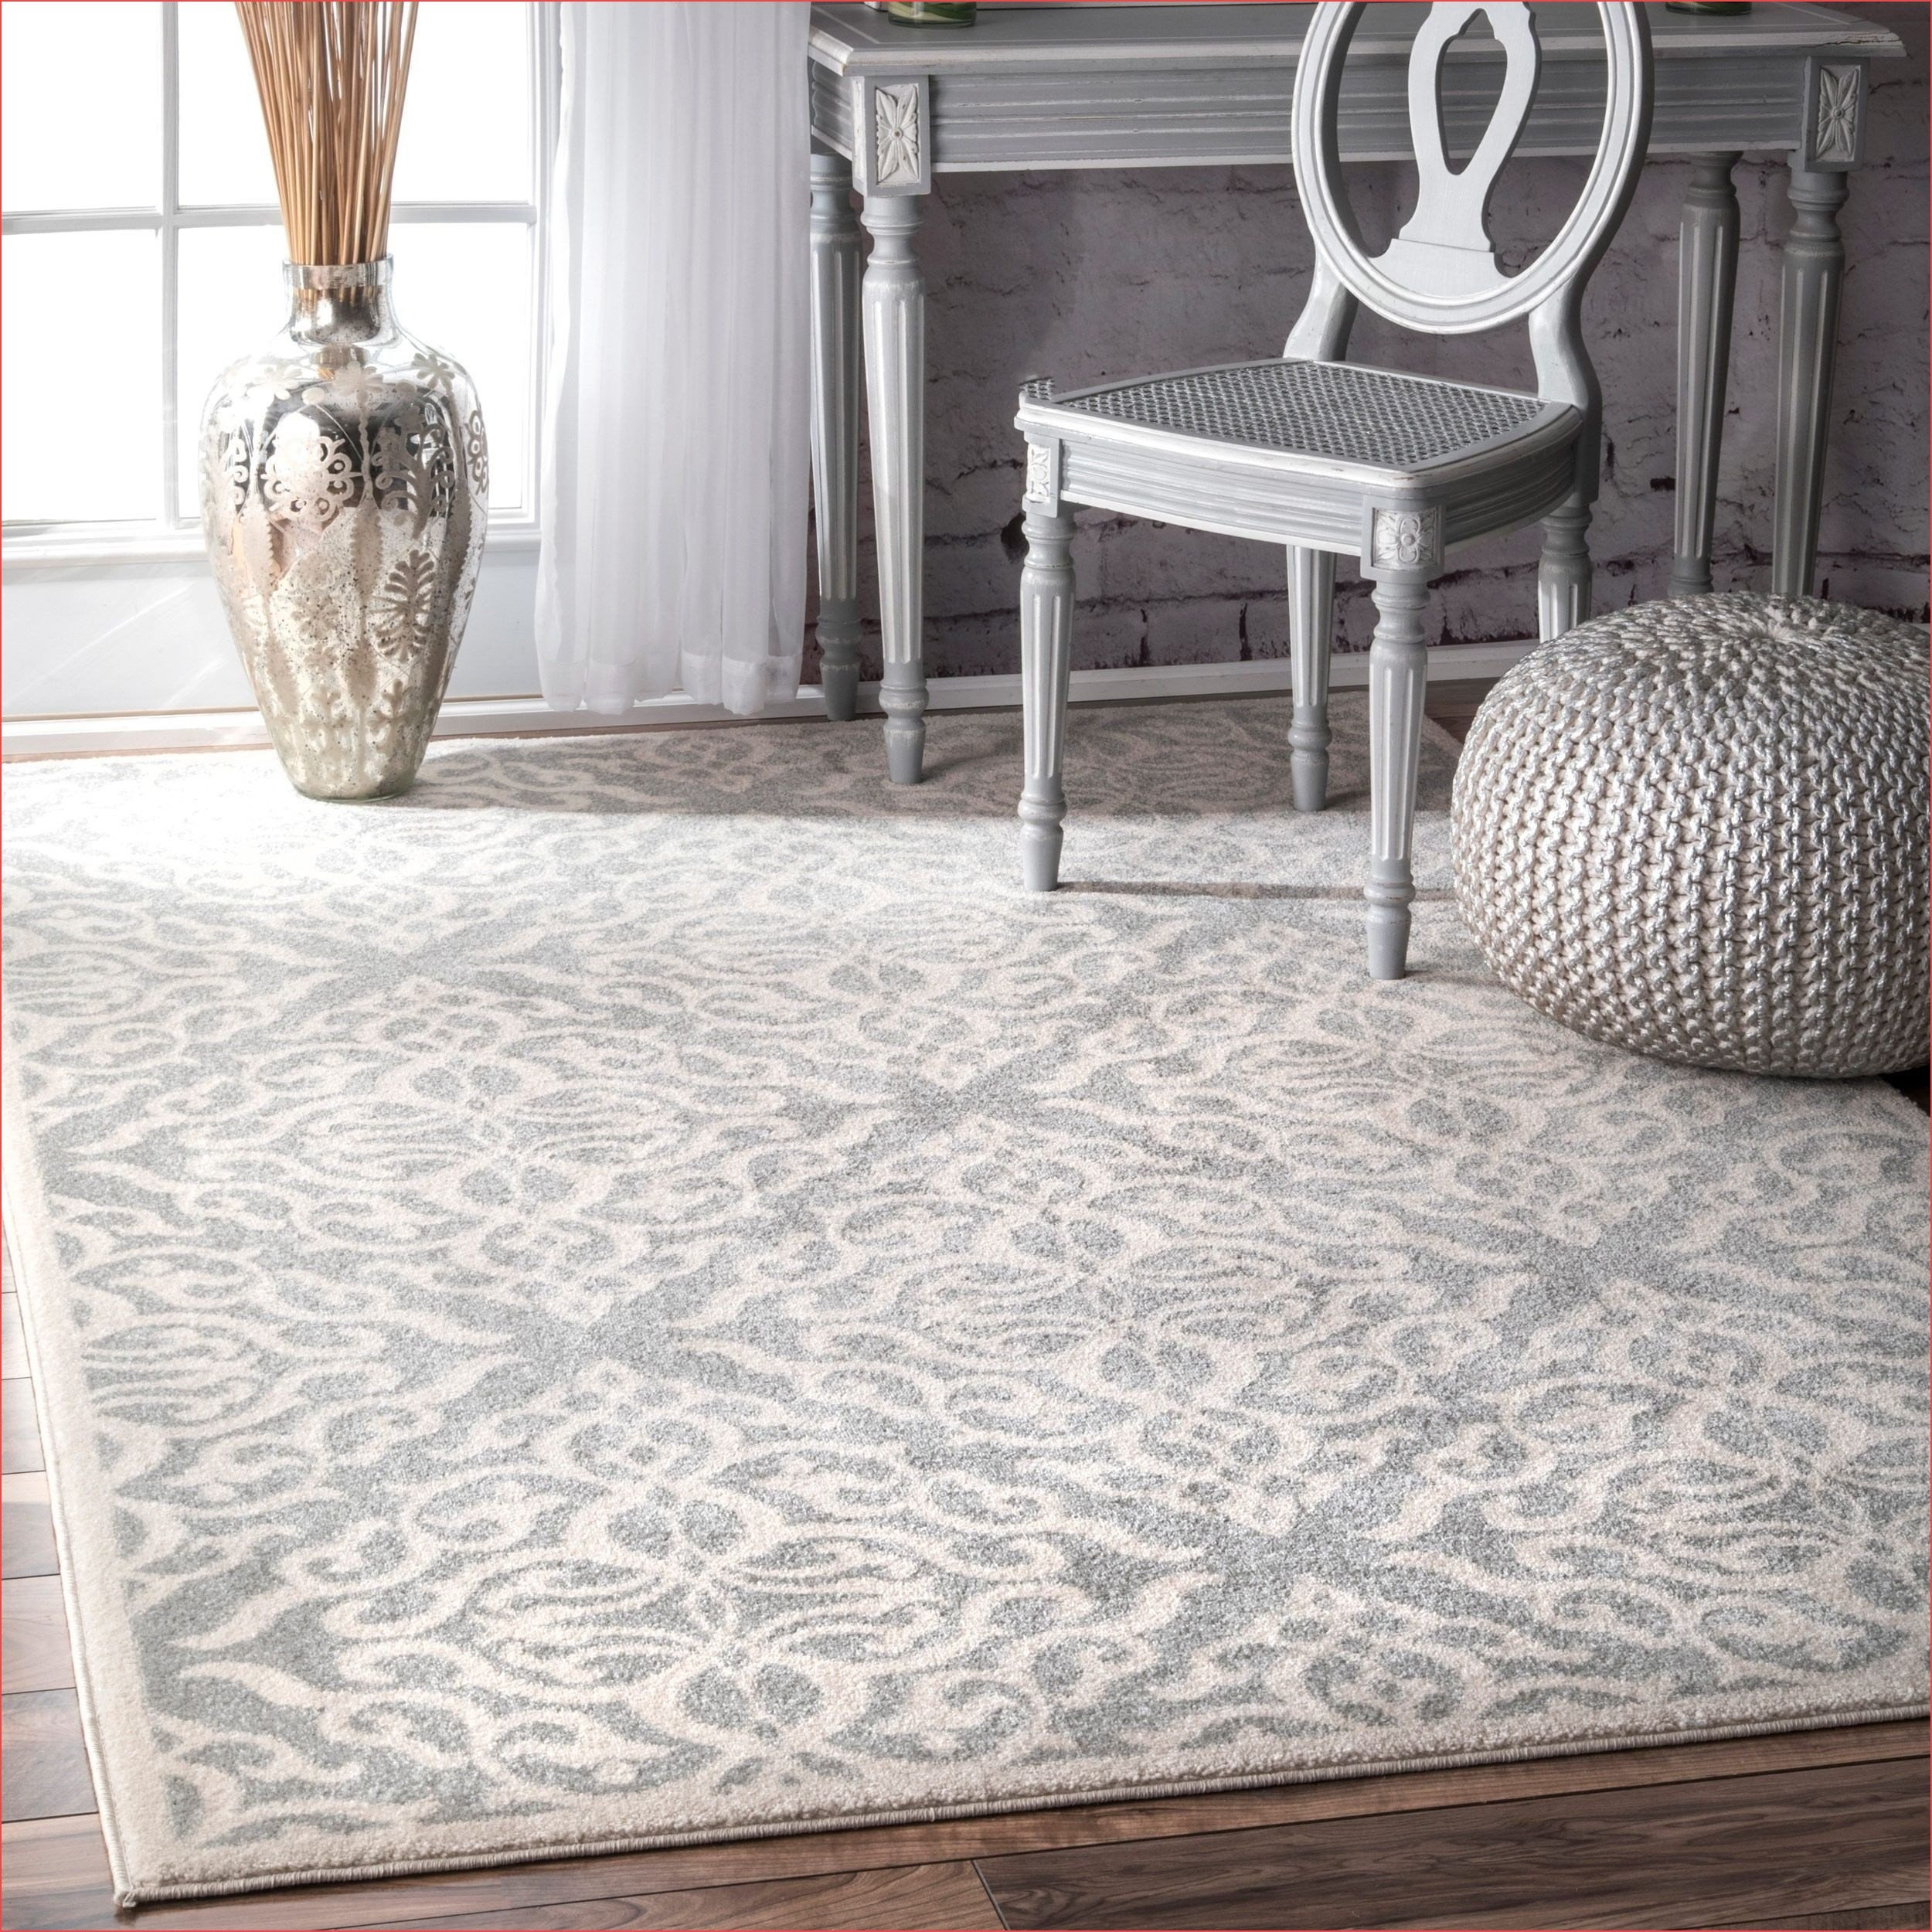 Cute Rugs for Bedroom Elegant 21 Elegant Hardwood Floor Bedroom